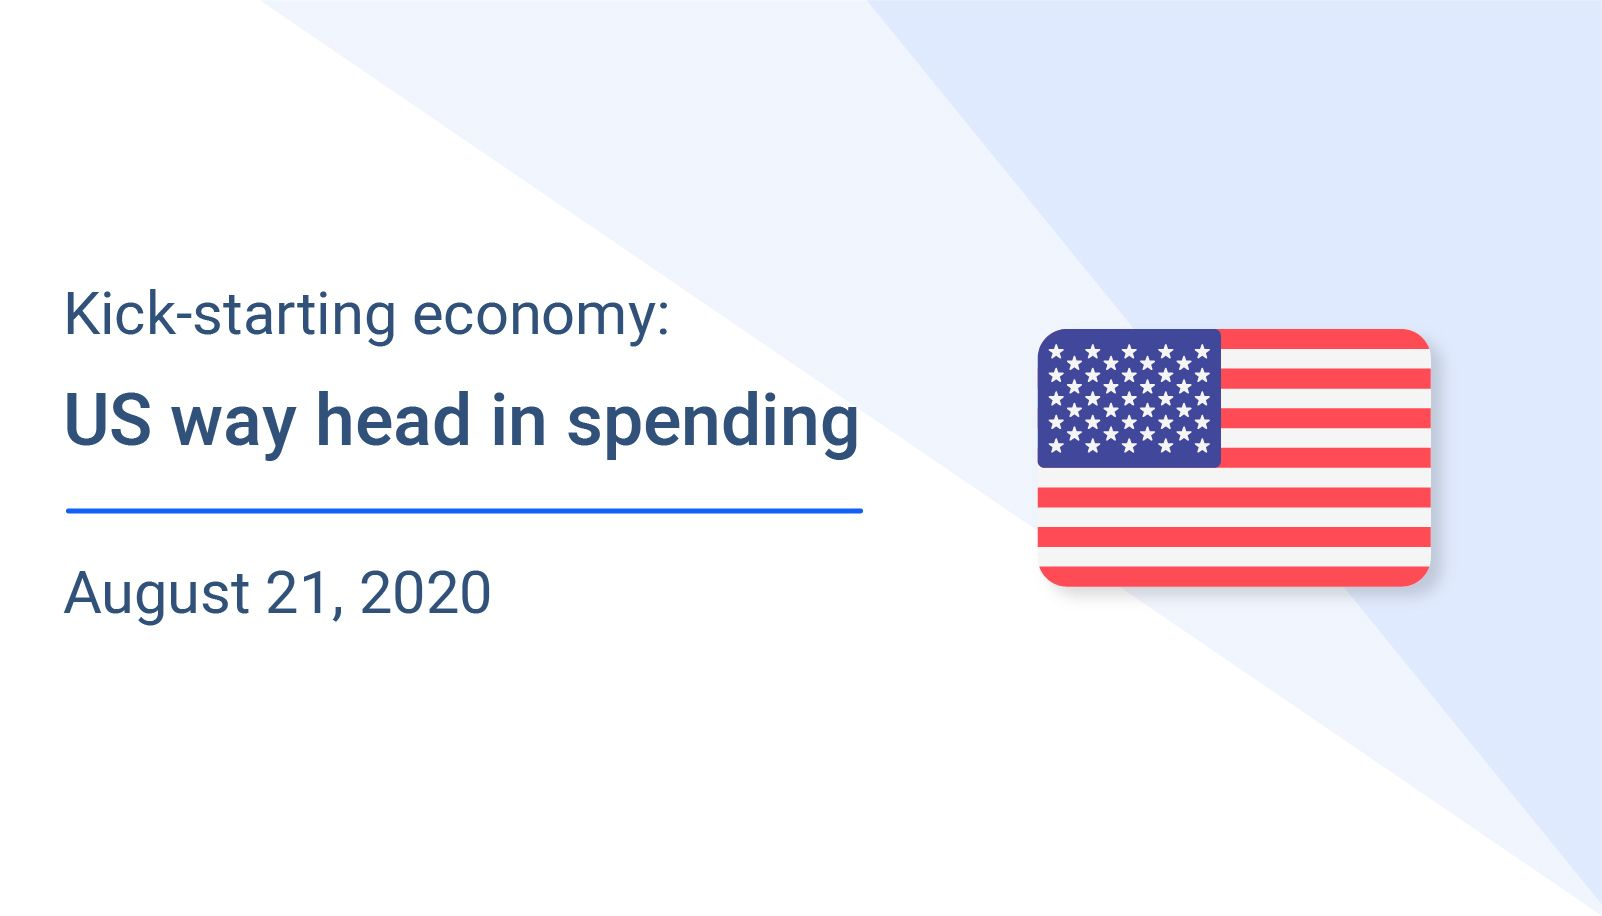 Kick-starting economy: U.S. way head in spending